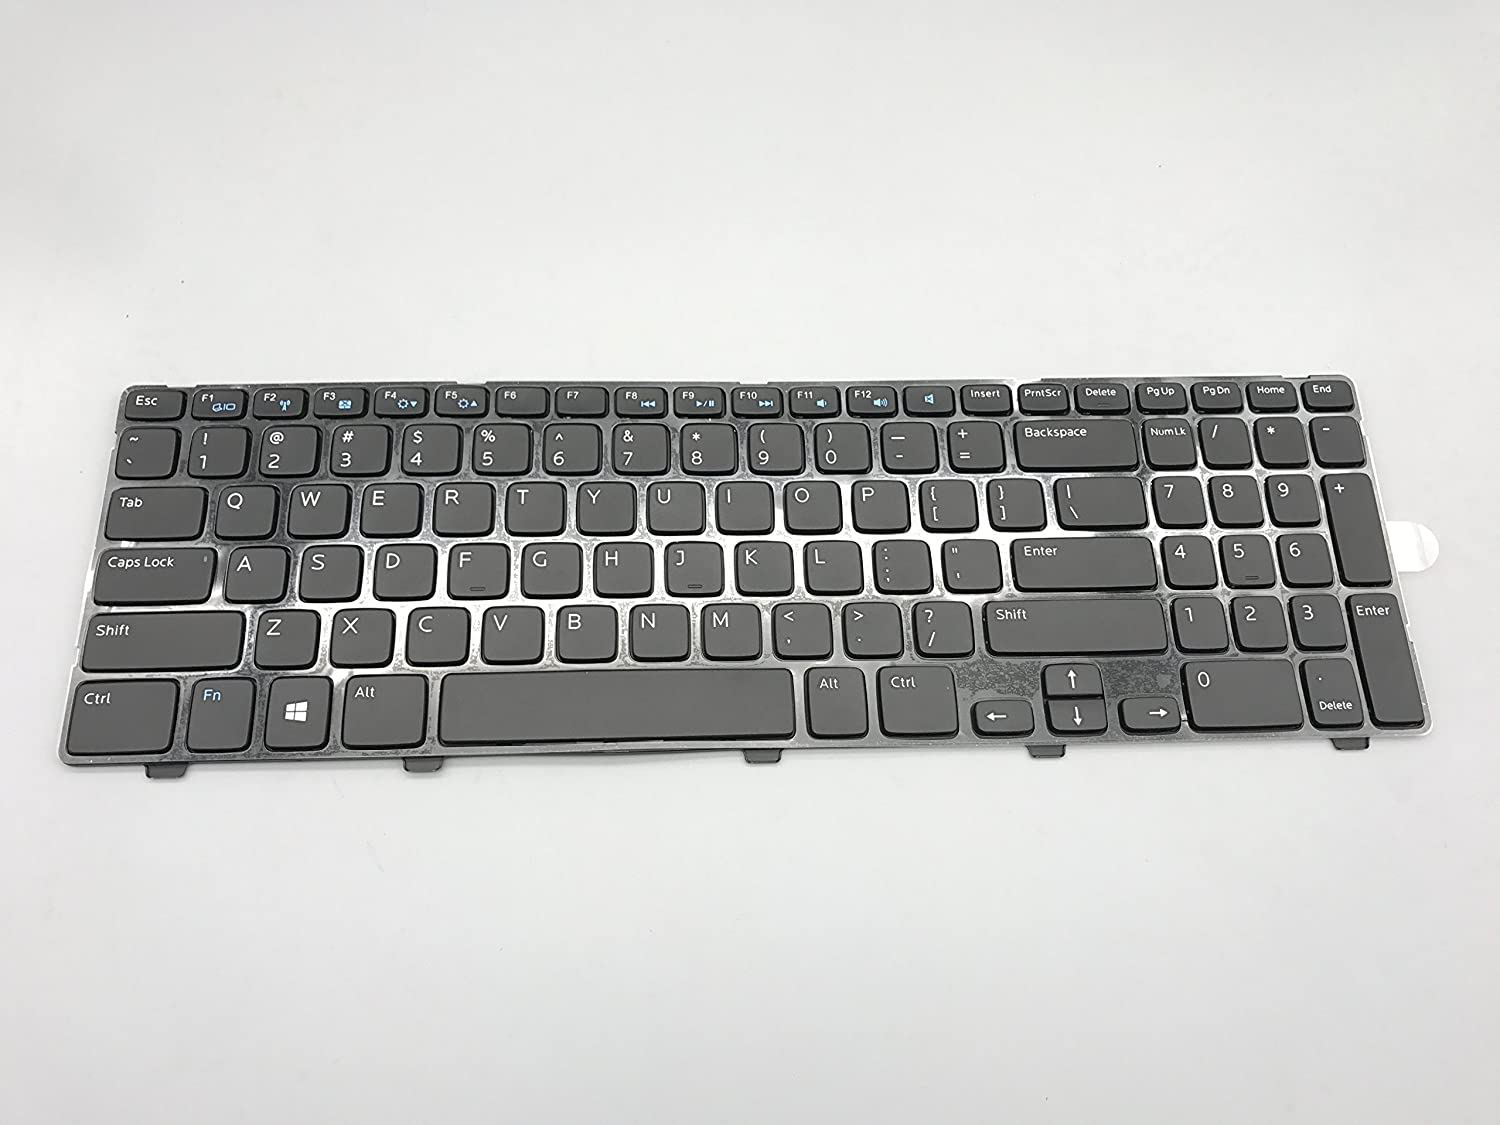 Replacement Keyboard for Dell Inspiron 15-3521 15-3537 15R-5521 15R-5528 15R-5537 M531R Vostro 2521 Laptop 352